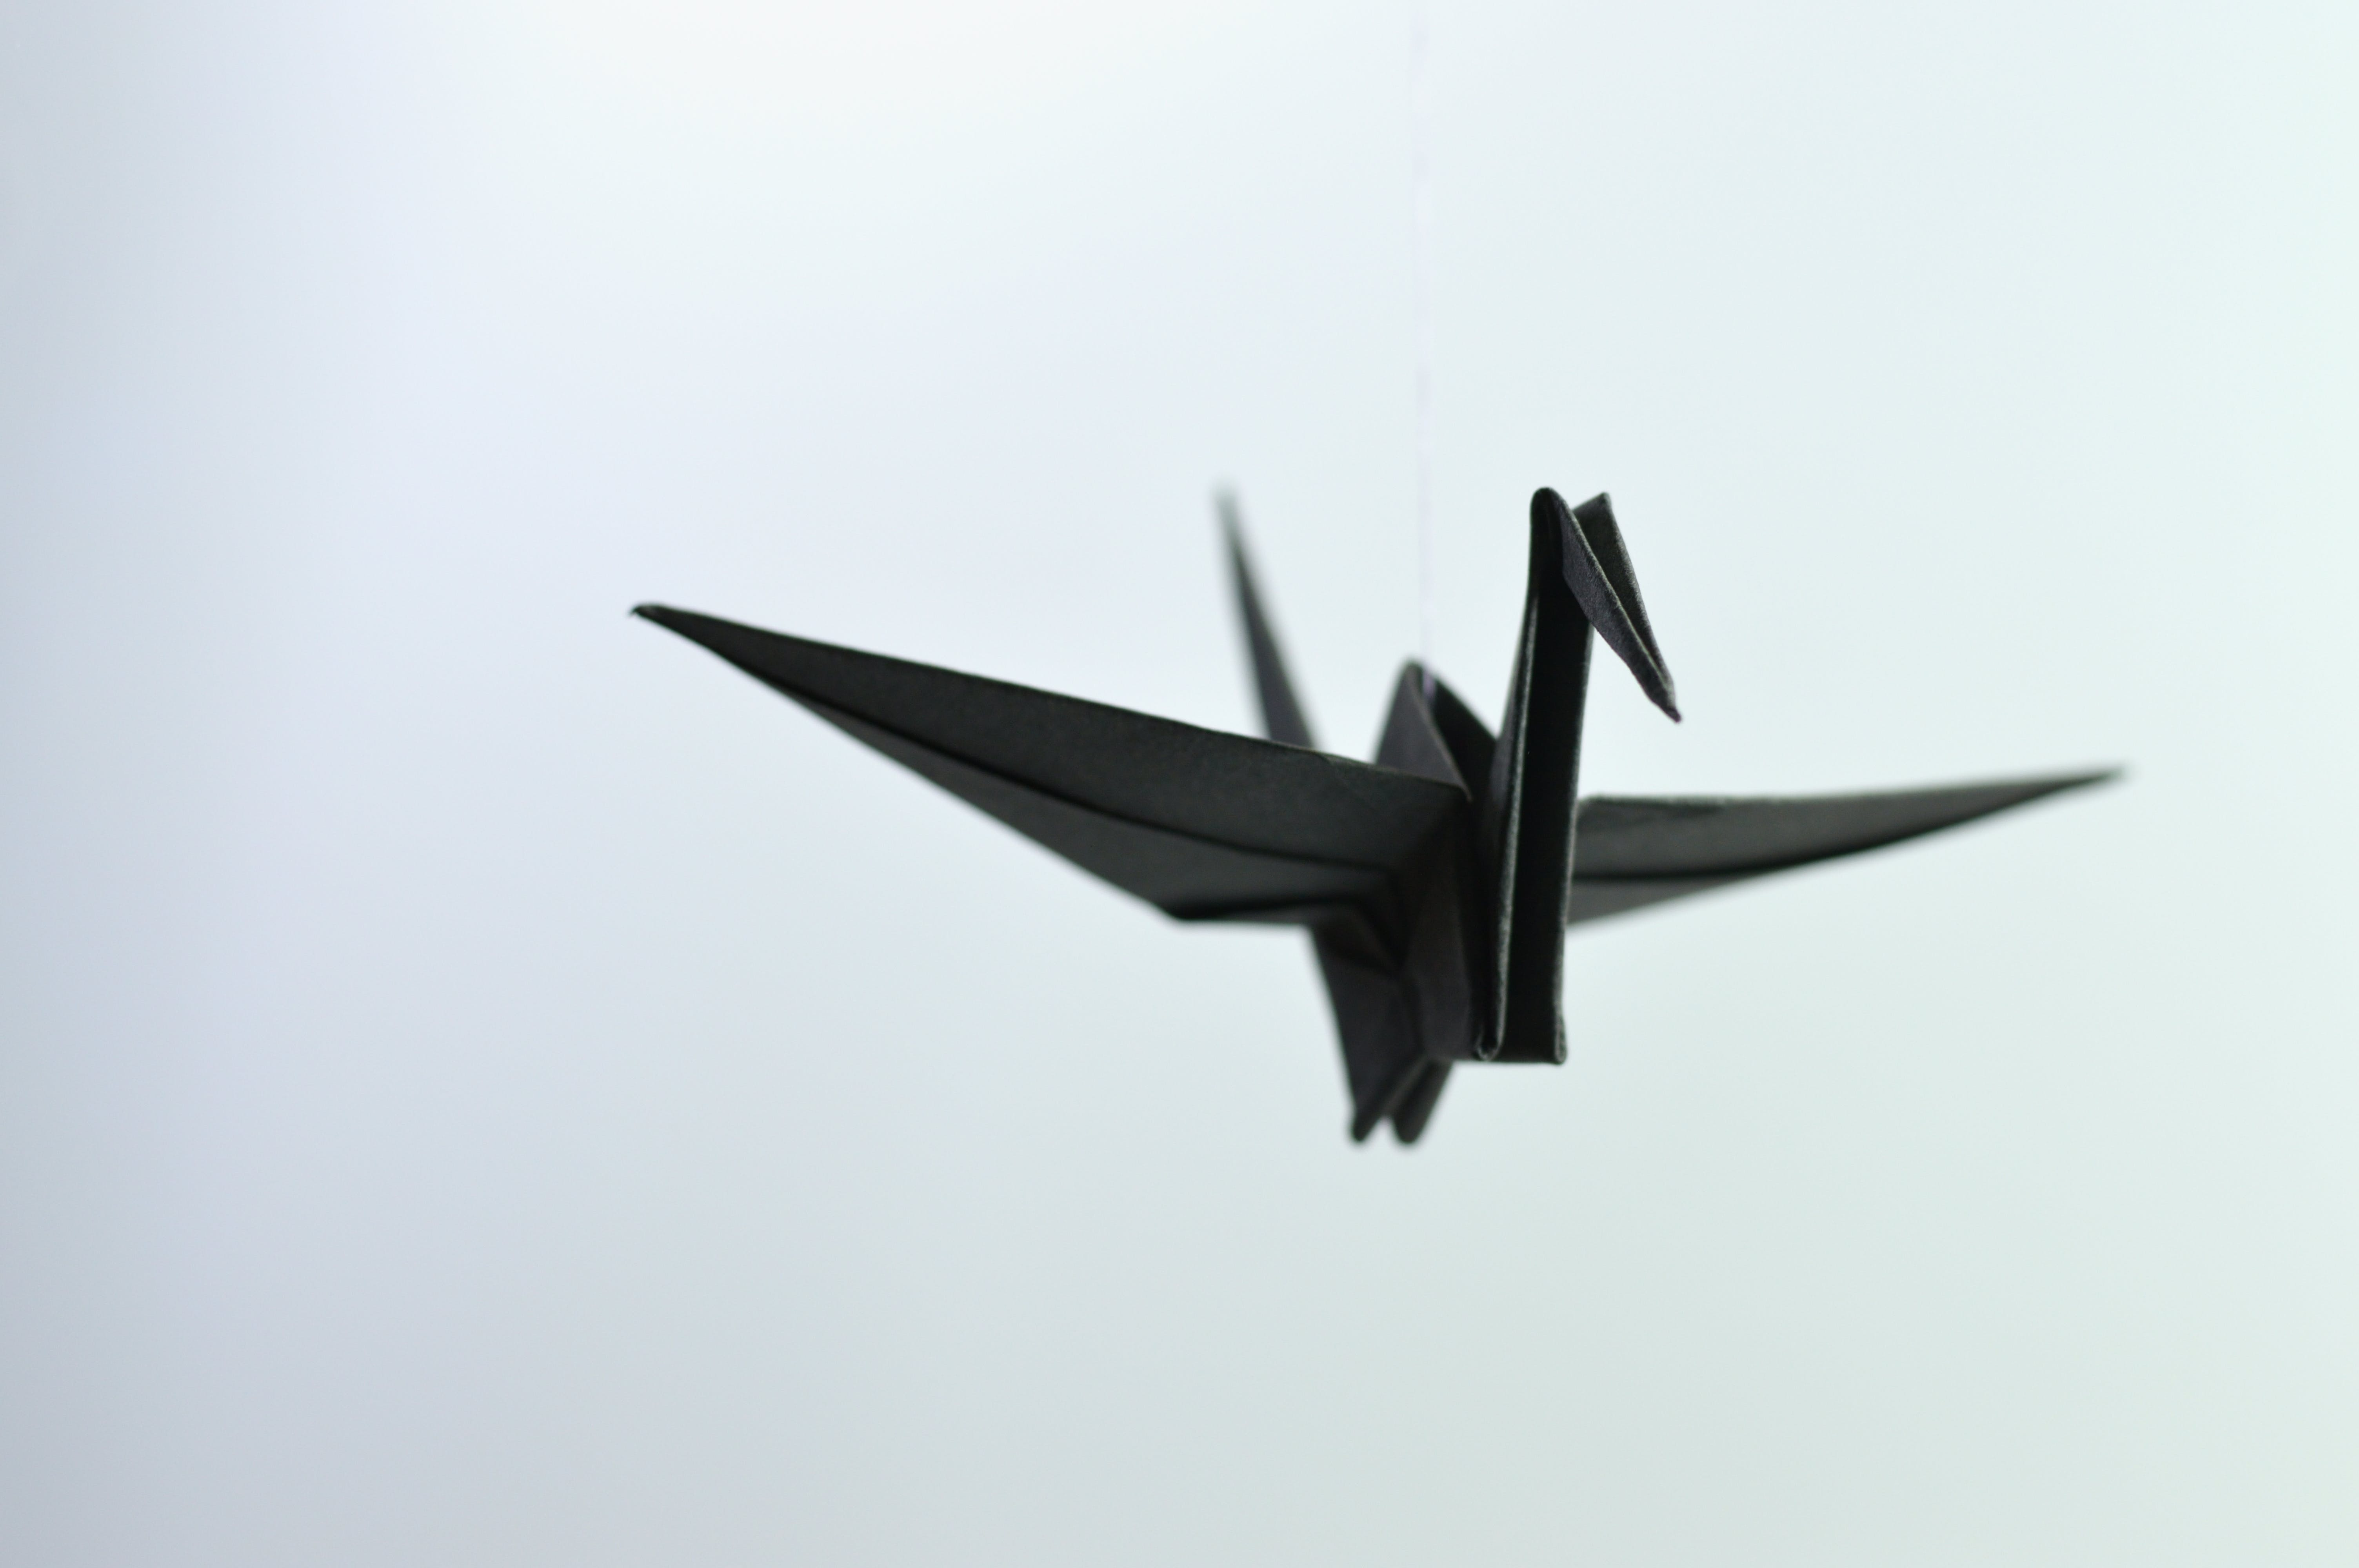 Selective Focus Photo Of Origami